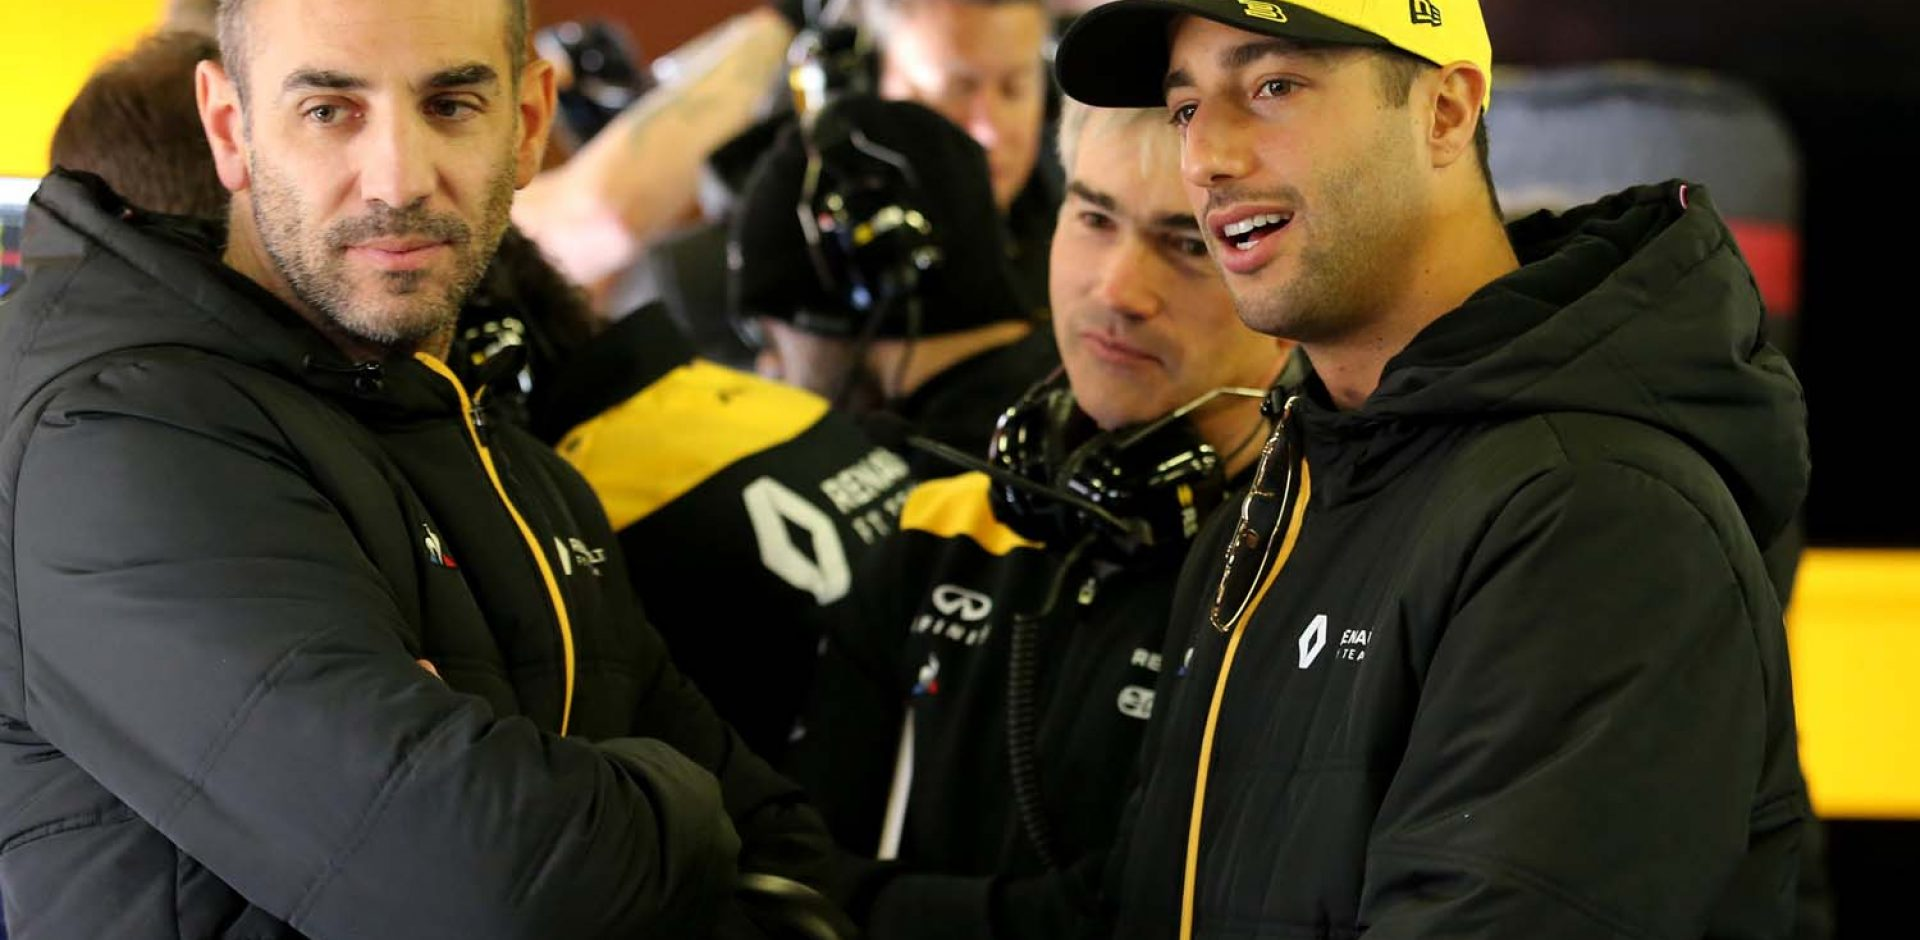 (L to R): Cyril Abiteboul (FRA) Renault Sport F1 Managing Director with Nick Chester (GBR) Renault Sport F1 Team Chassis Technical Director and Daniel Ricciardo (AUS) Renault Sport F1 Team. Formula One Testing, Day 1, Monday 18th February 2019. Barcelona, Spain.